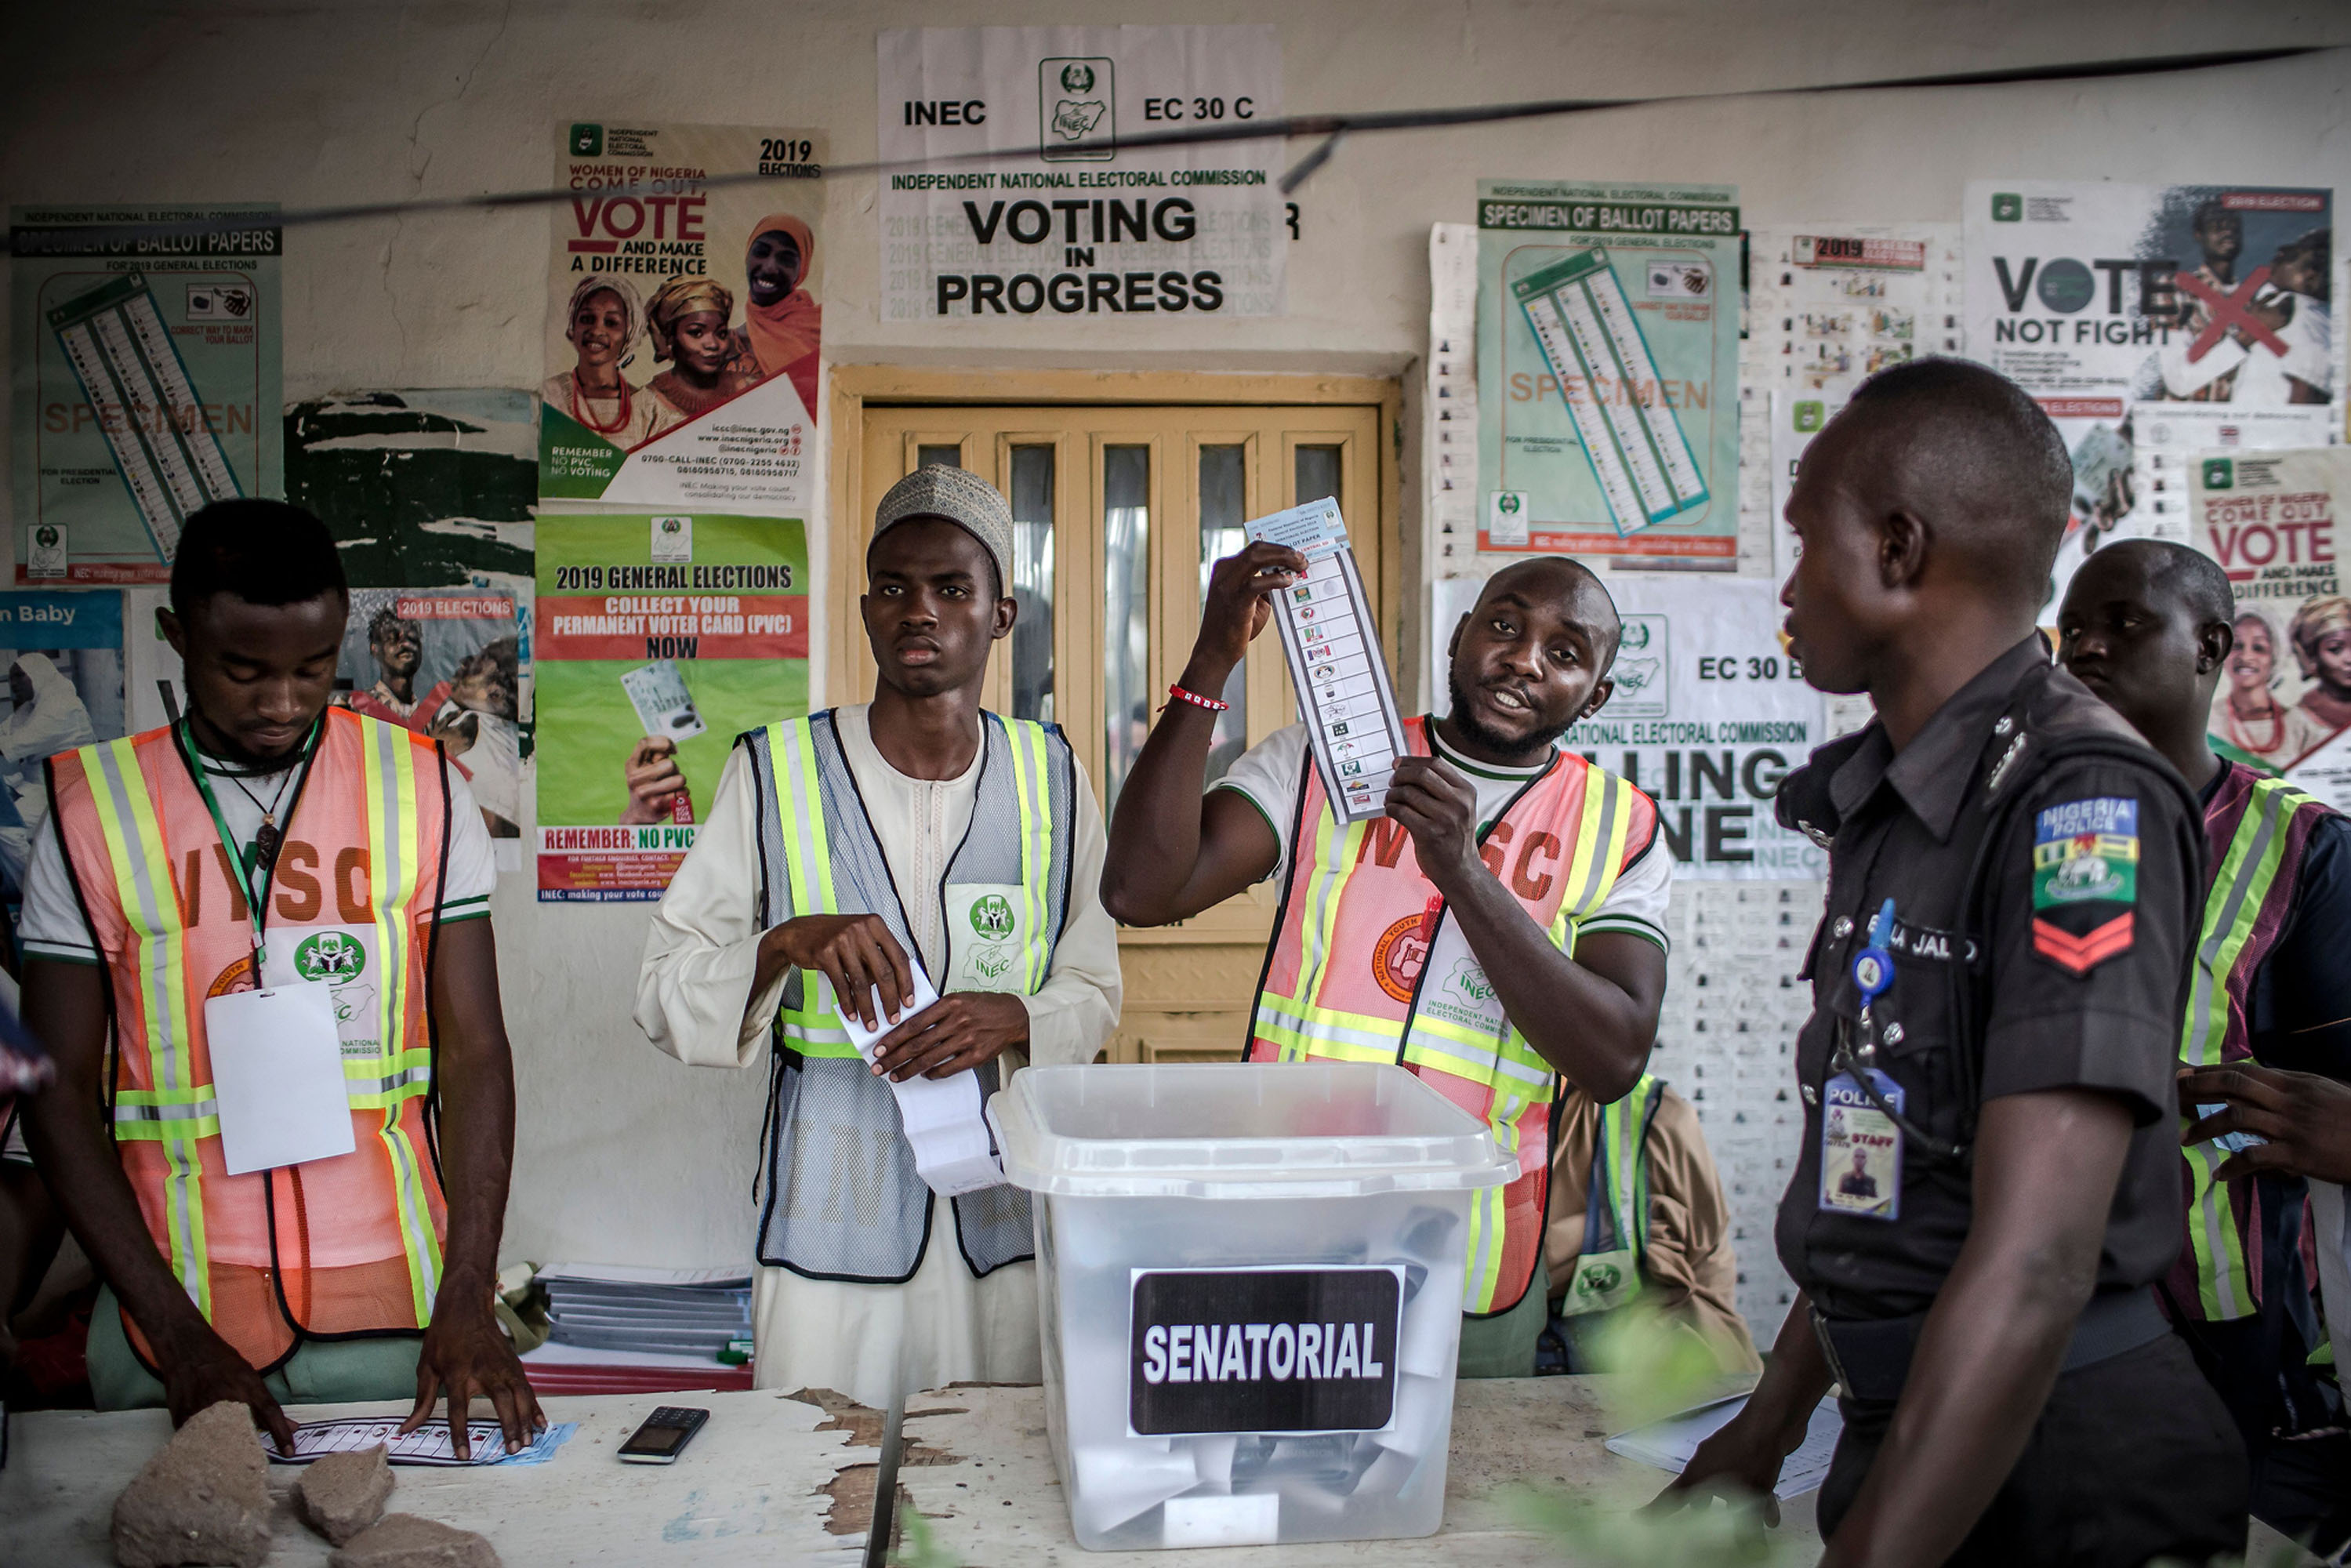 Buhari wins first two states of 36 States in Vote